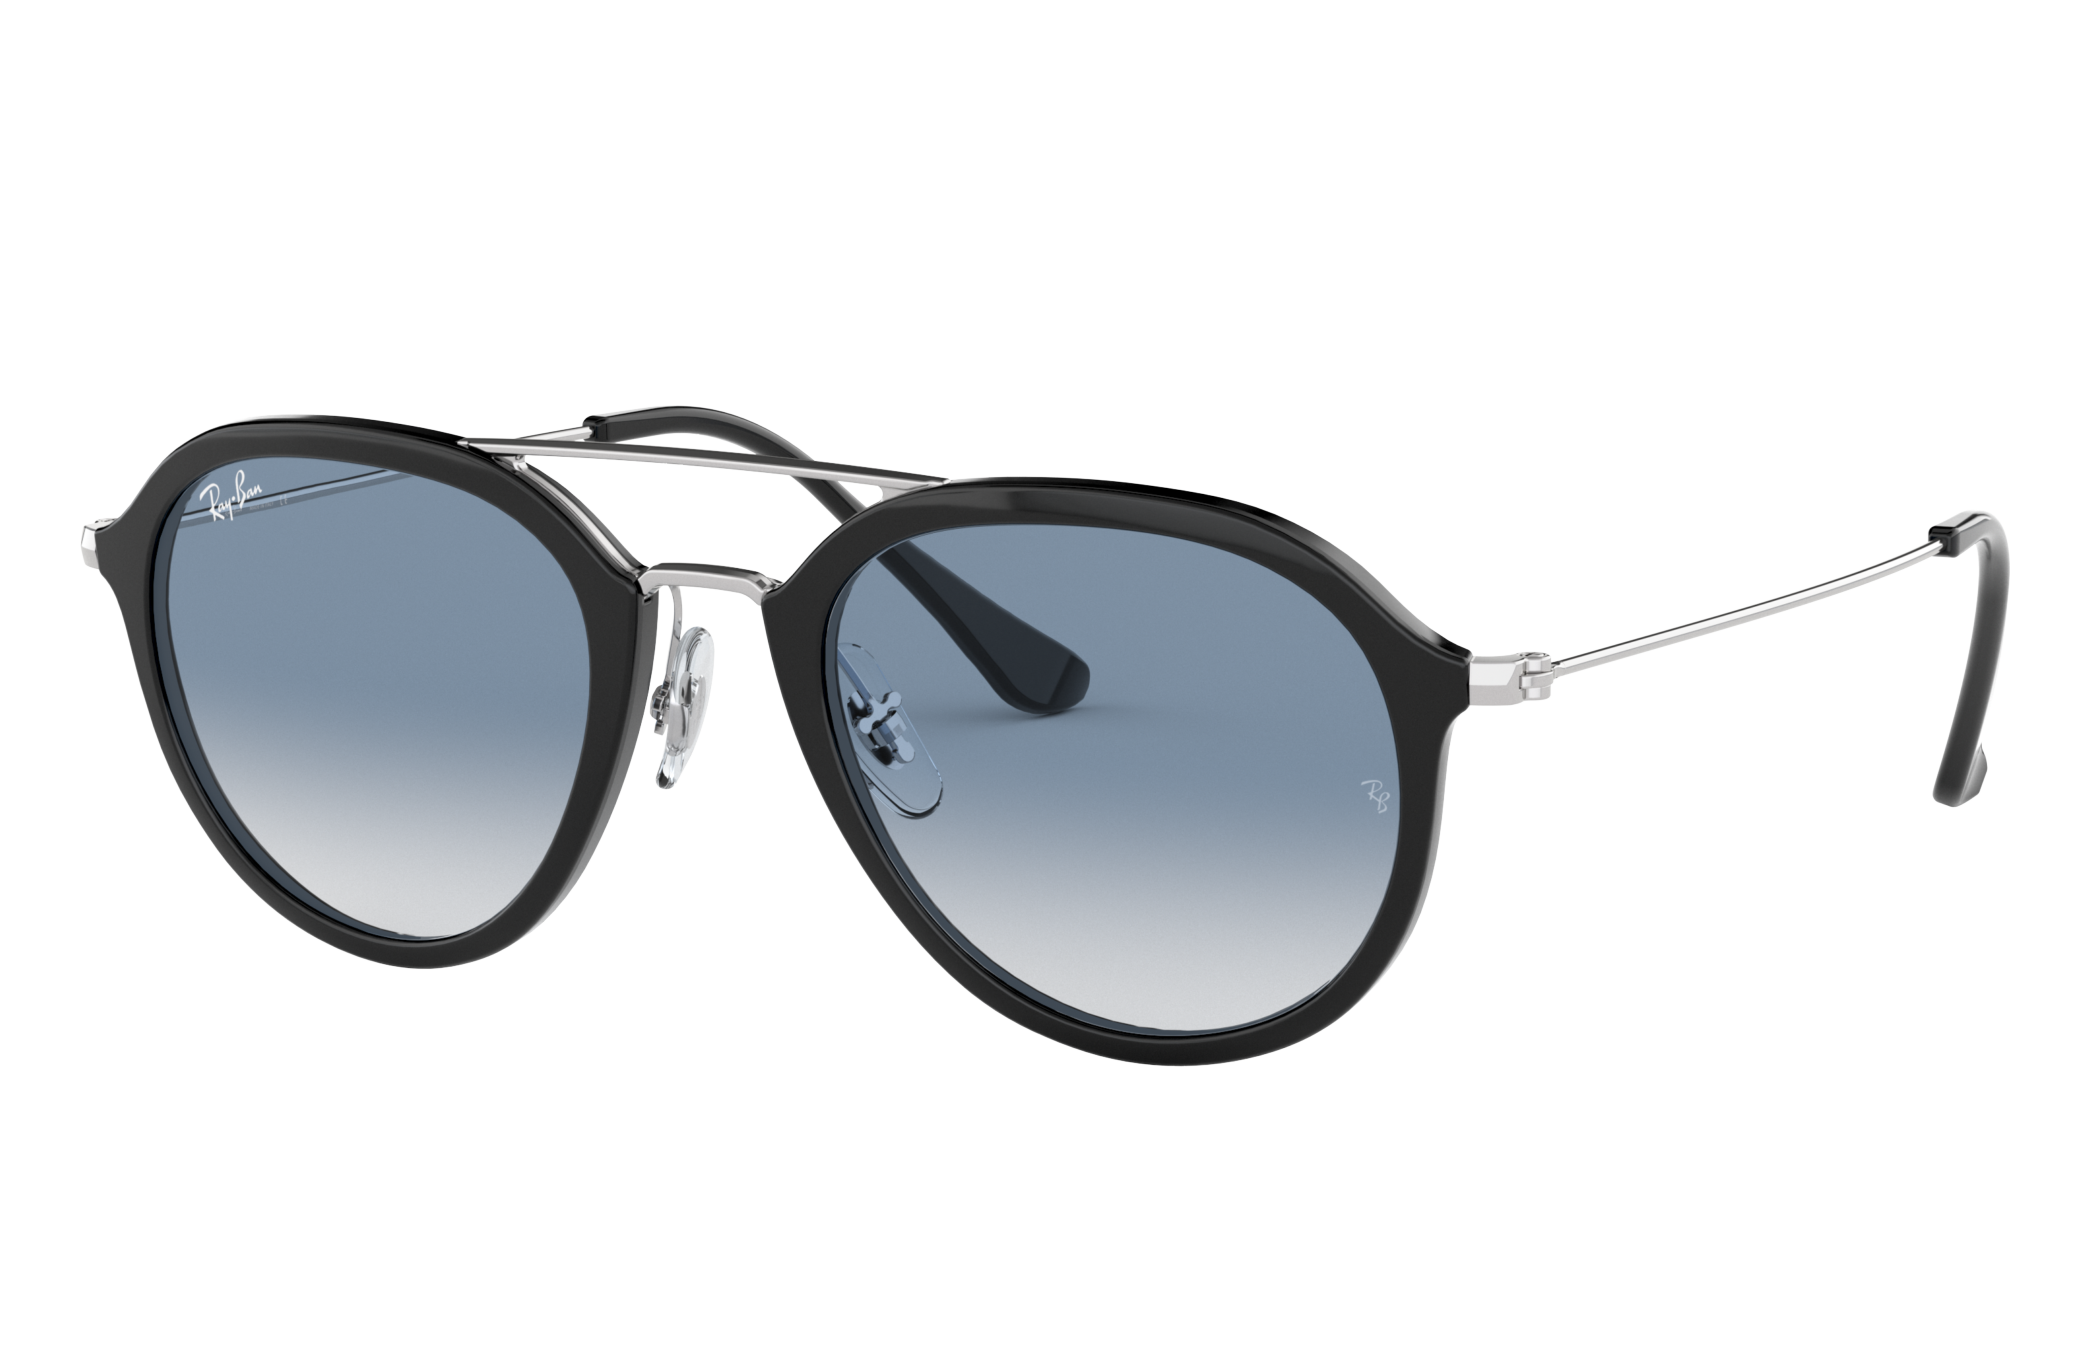 Ray-Ban Rb4253 Silver, Blue Lenses - RB4253